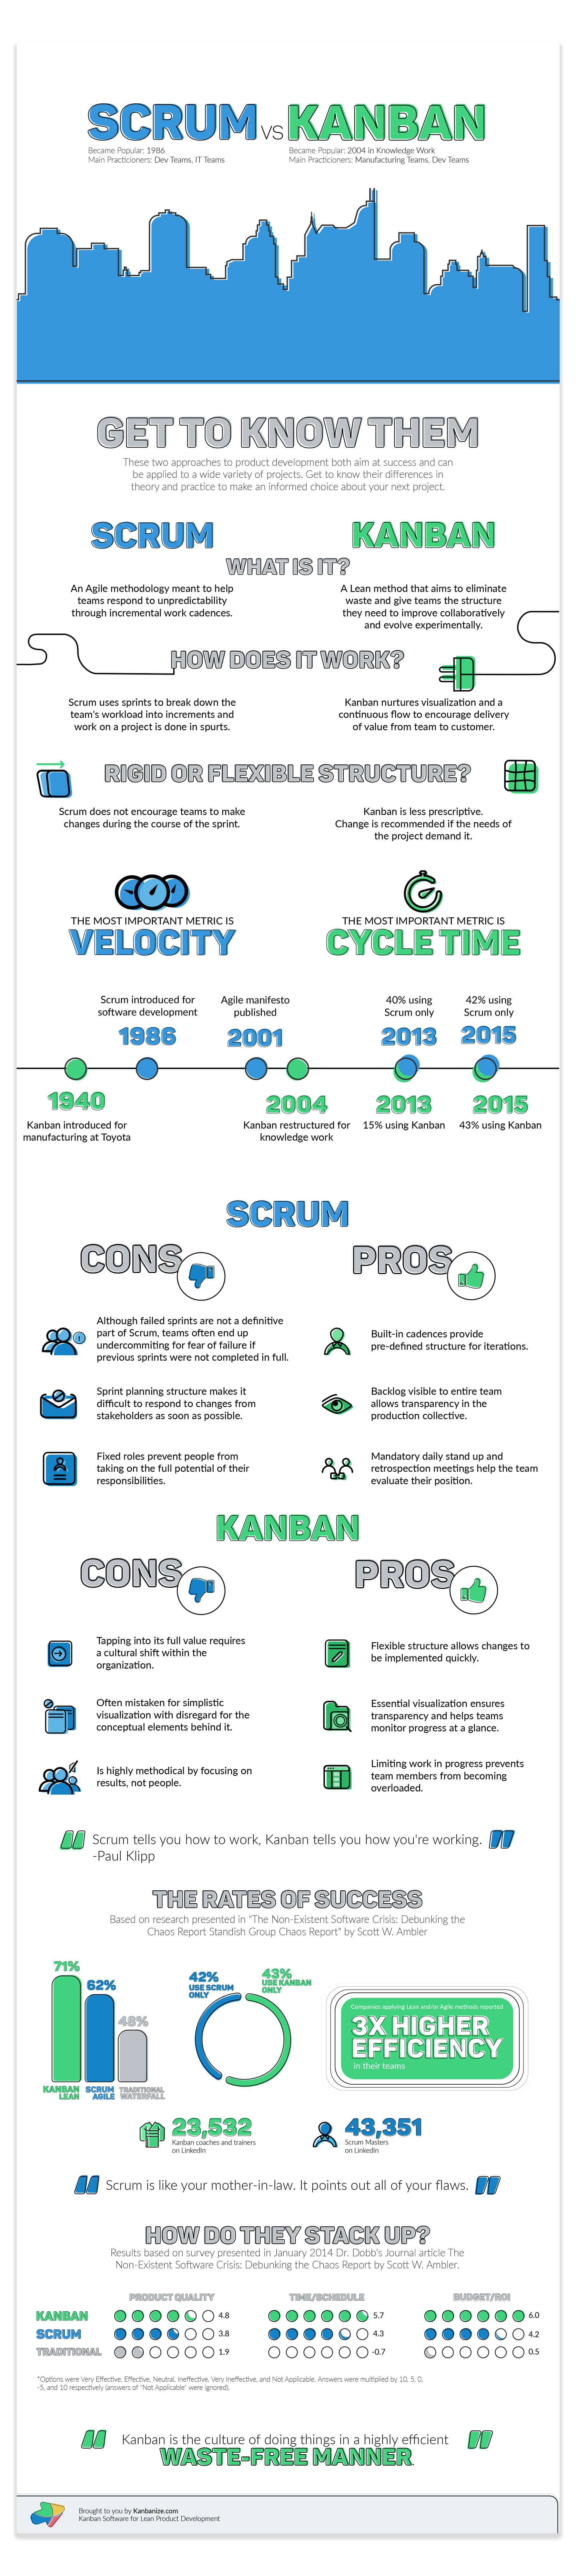 kanban vs scrum. what is the difference?